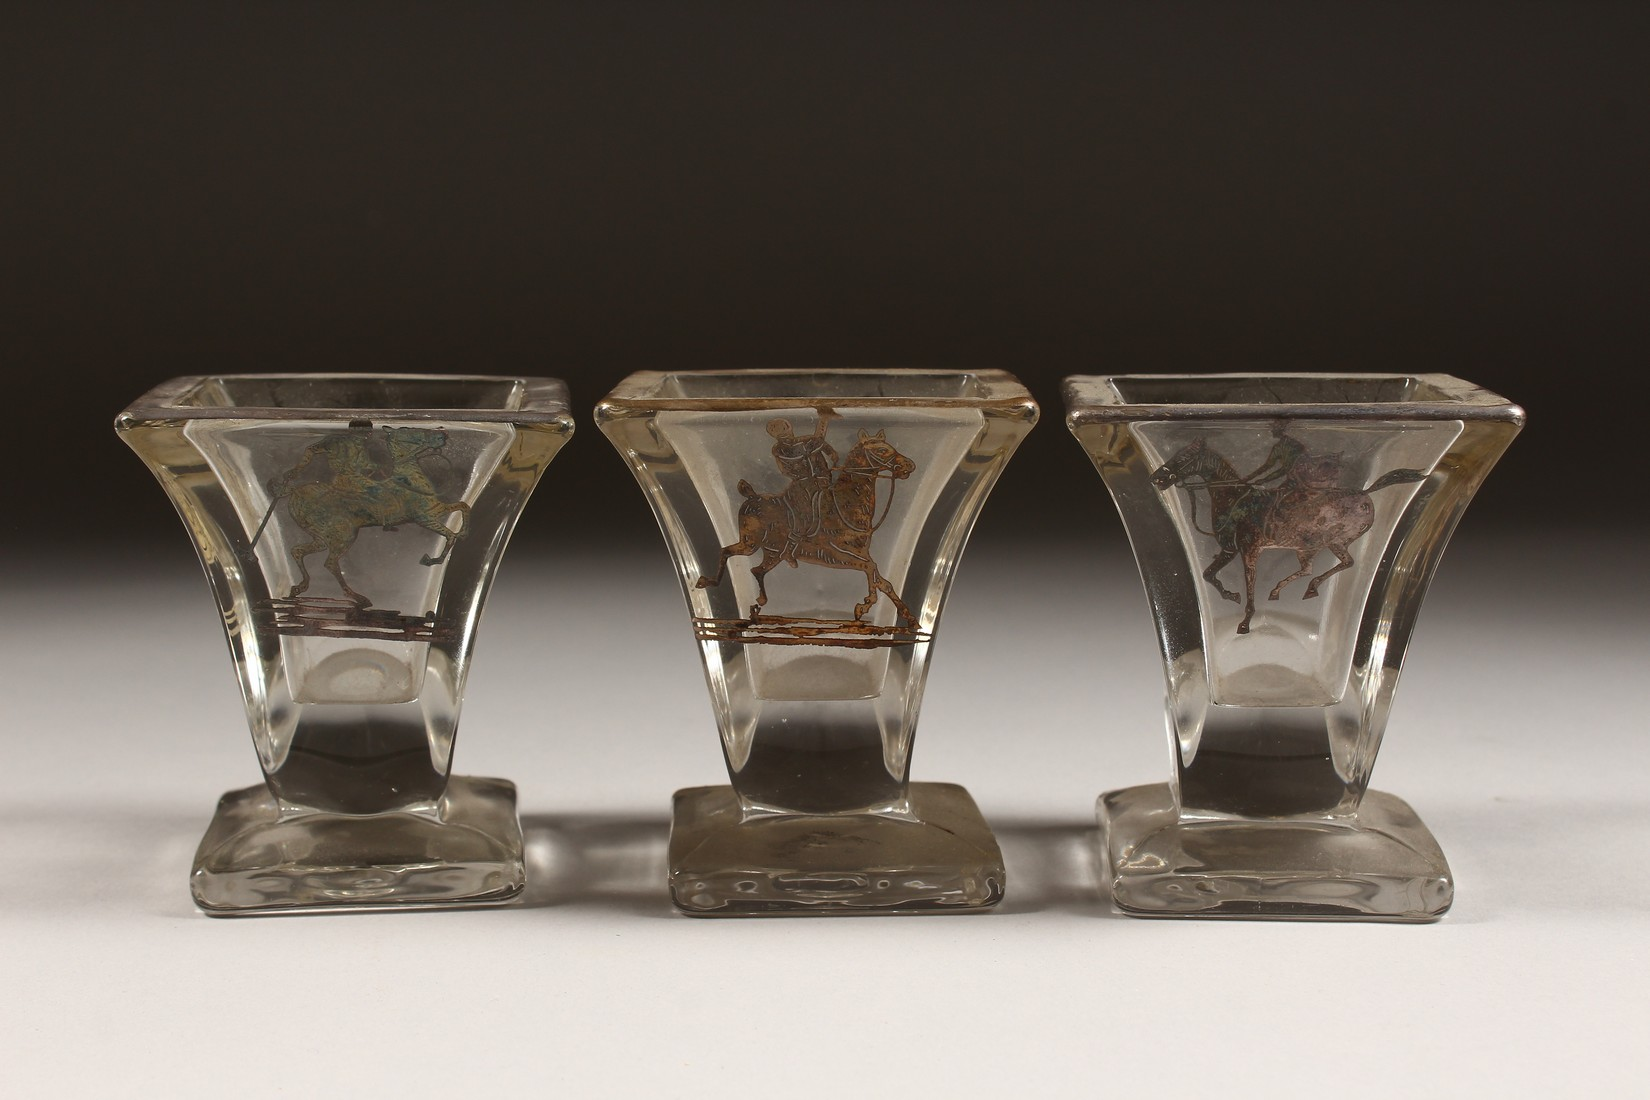 A SET OF THREE SILVER OVERLAY MOULDED GLASS SMALL VASES, decorated with polo players on horseback. - Image 2 of 5